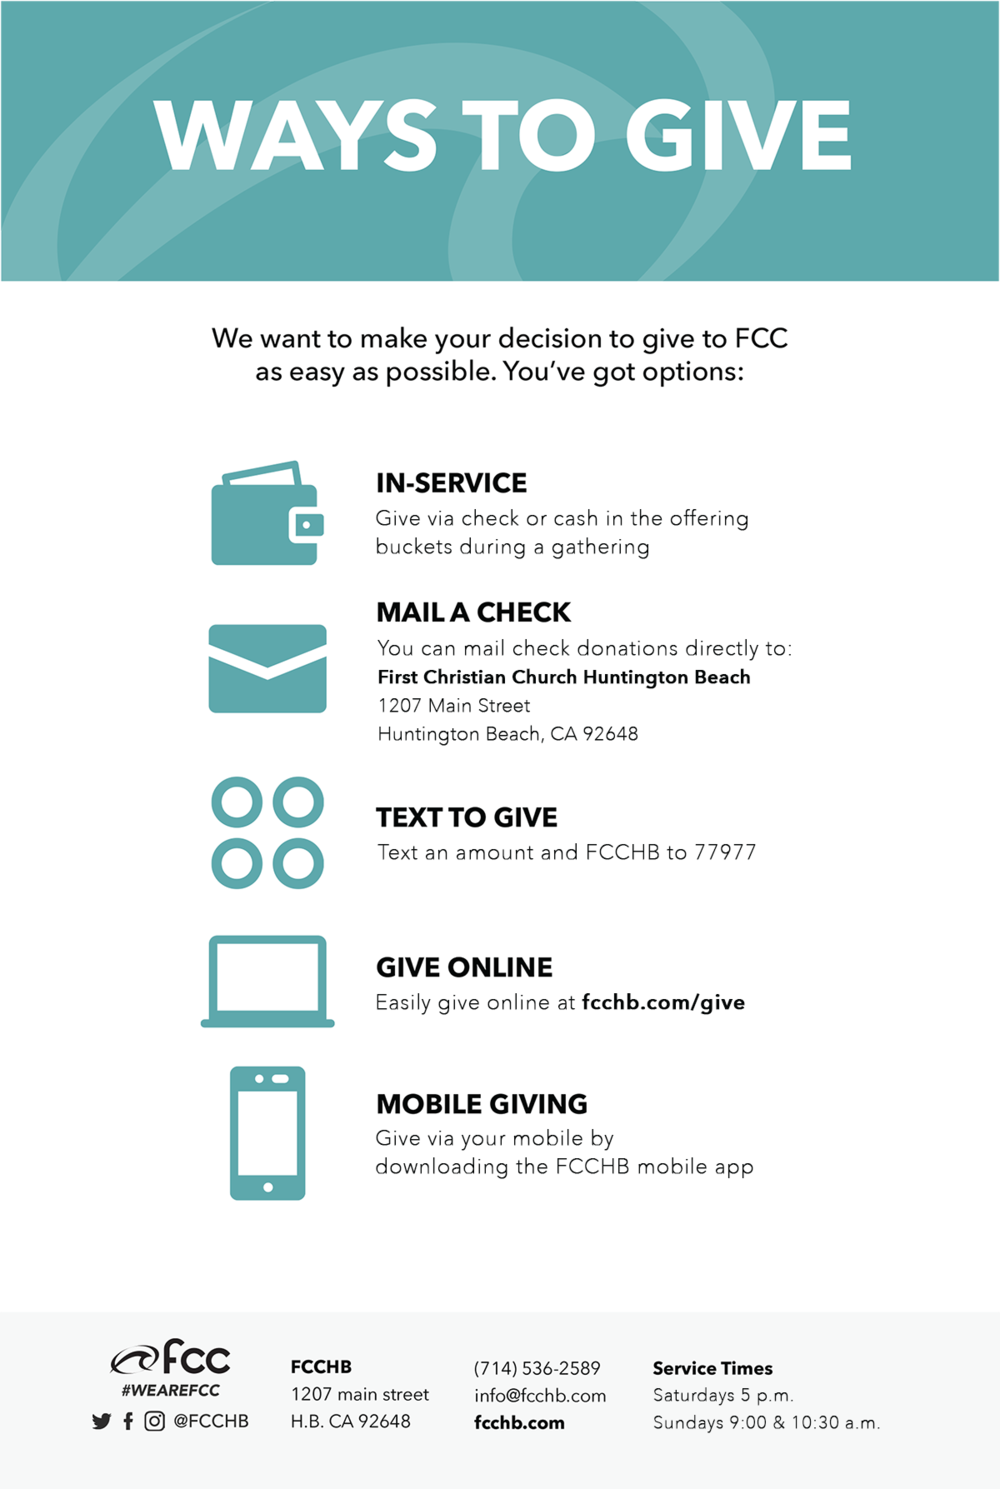 FCC-Ways-To-Give-Image.png